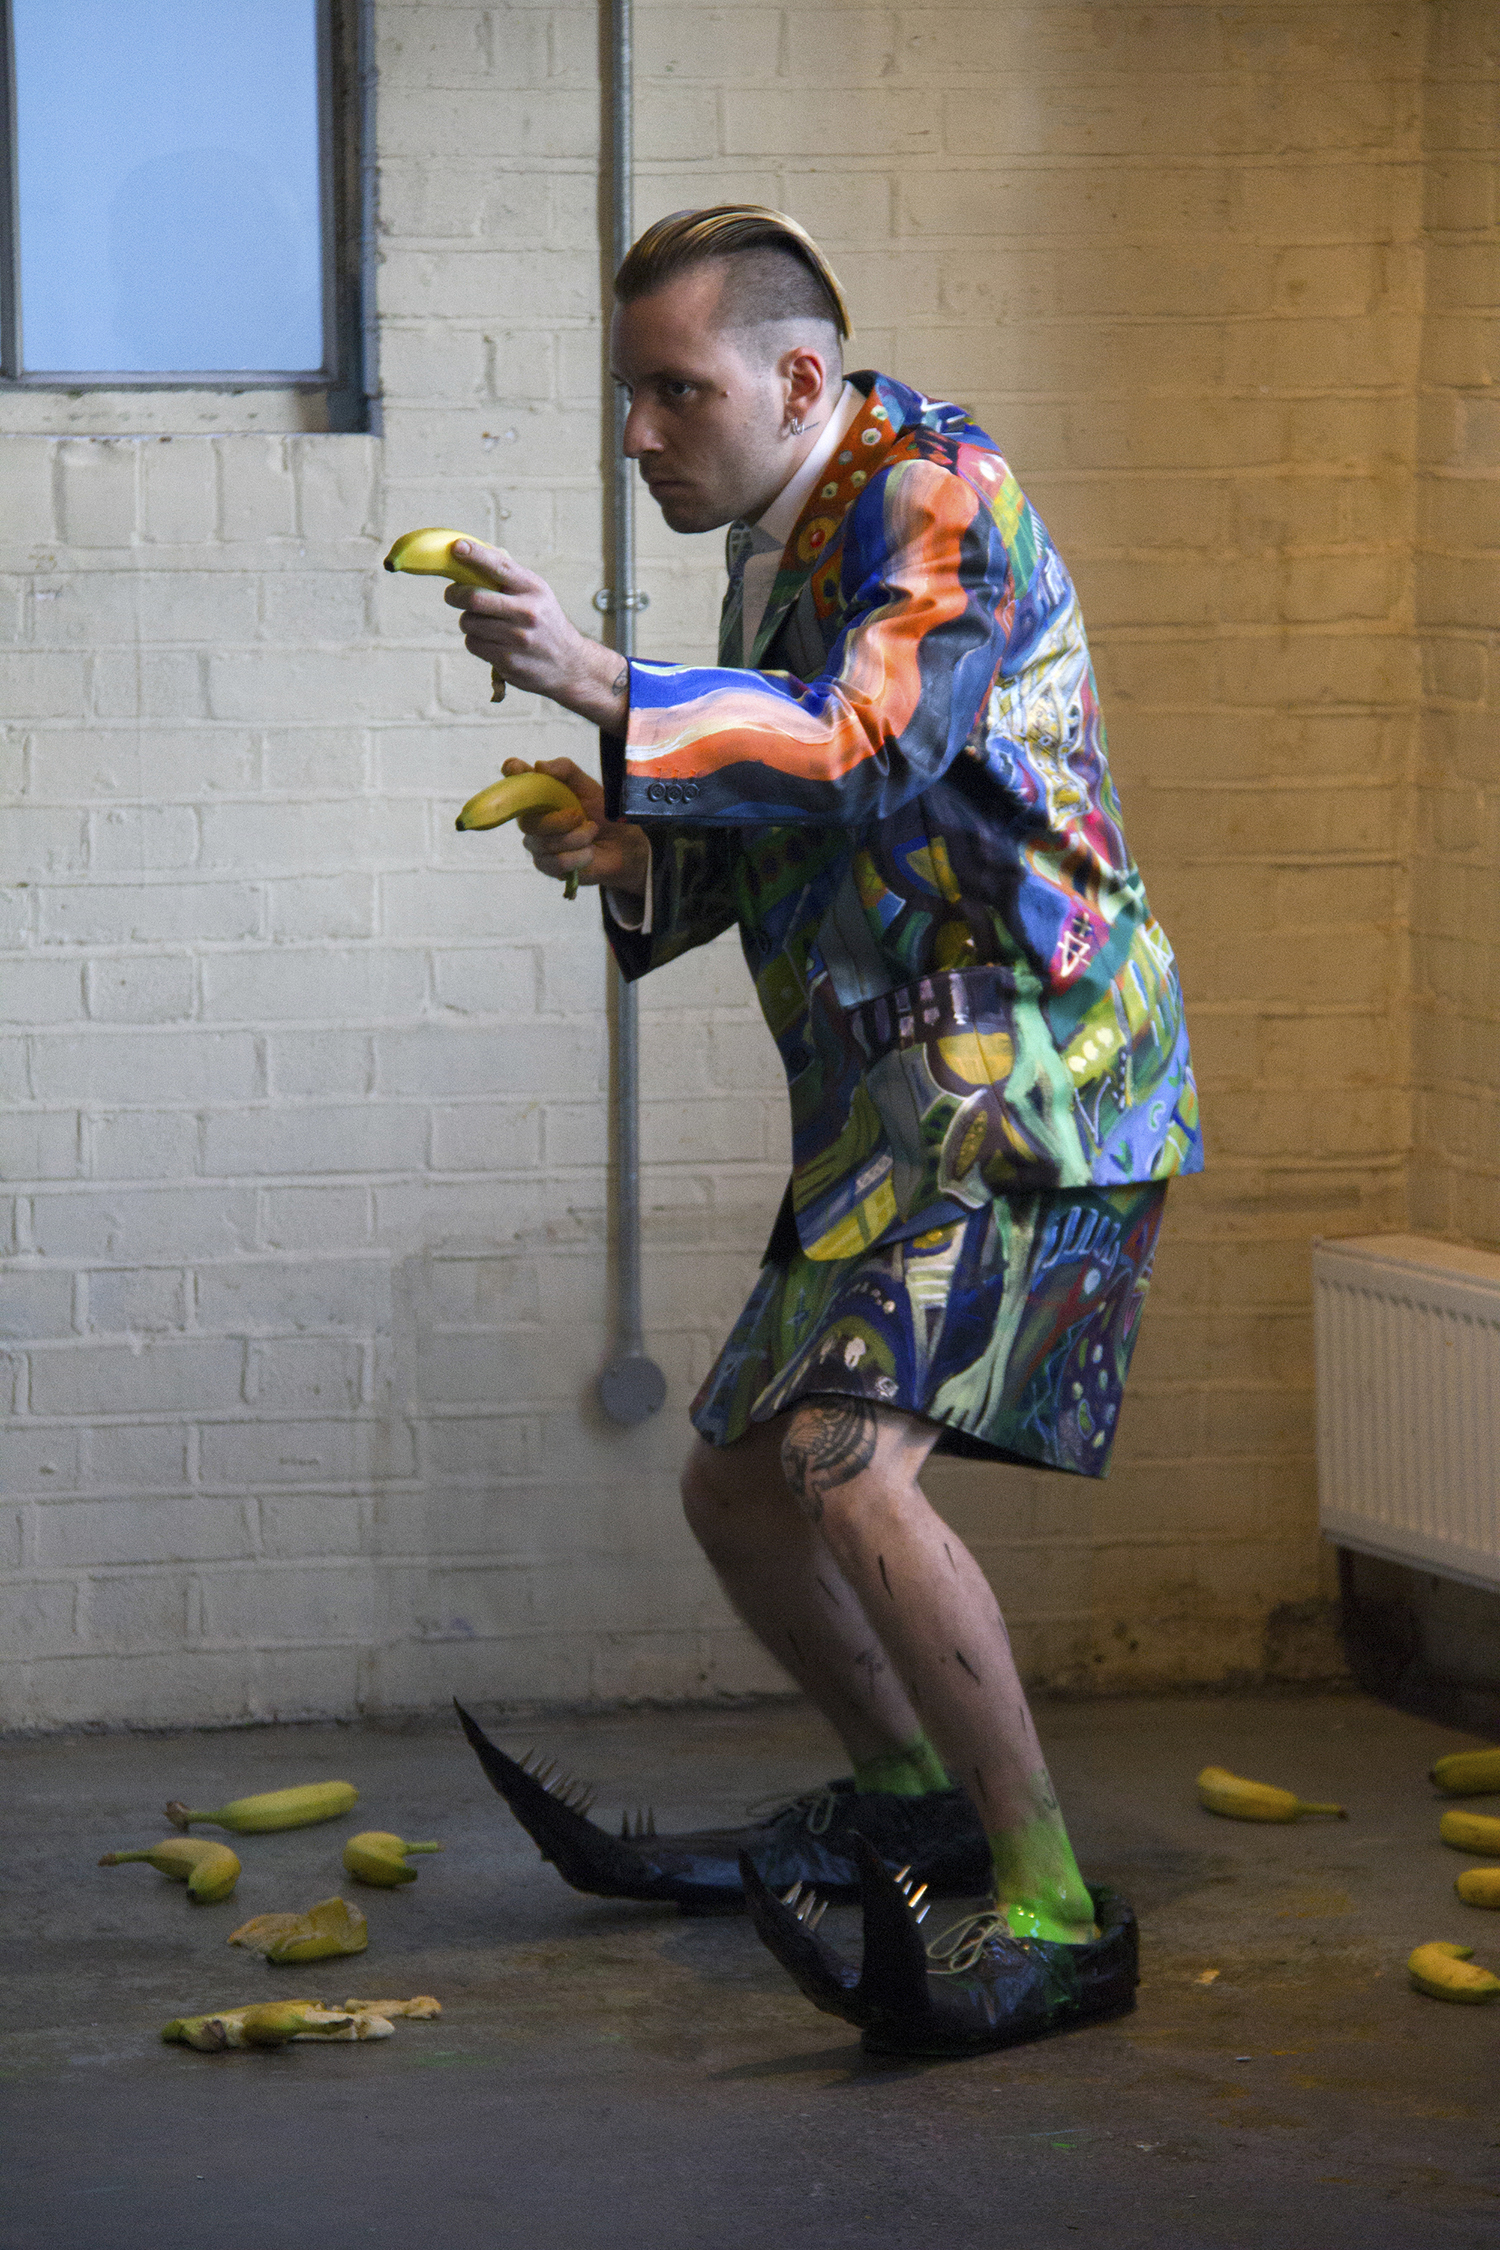 Male identified person holding two bananas as if they were guns. Image reference Andy Warhol Elvis.